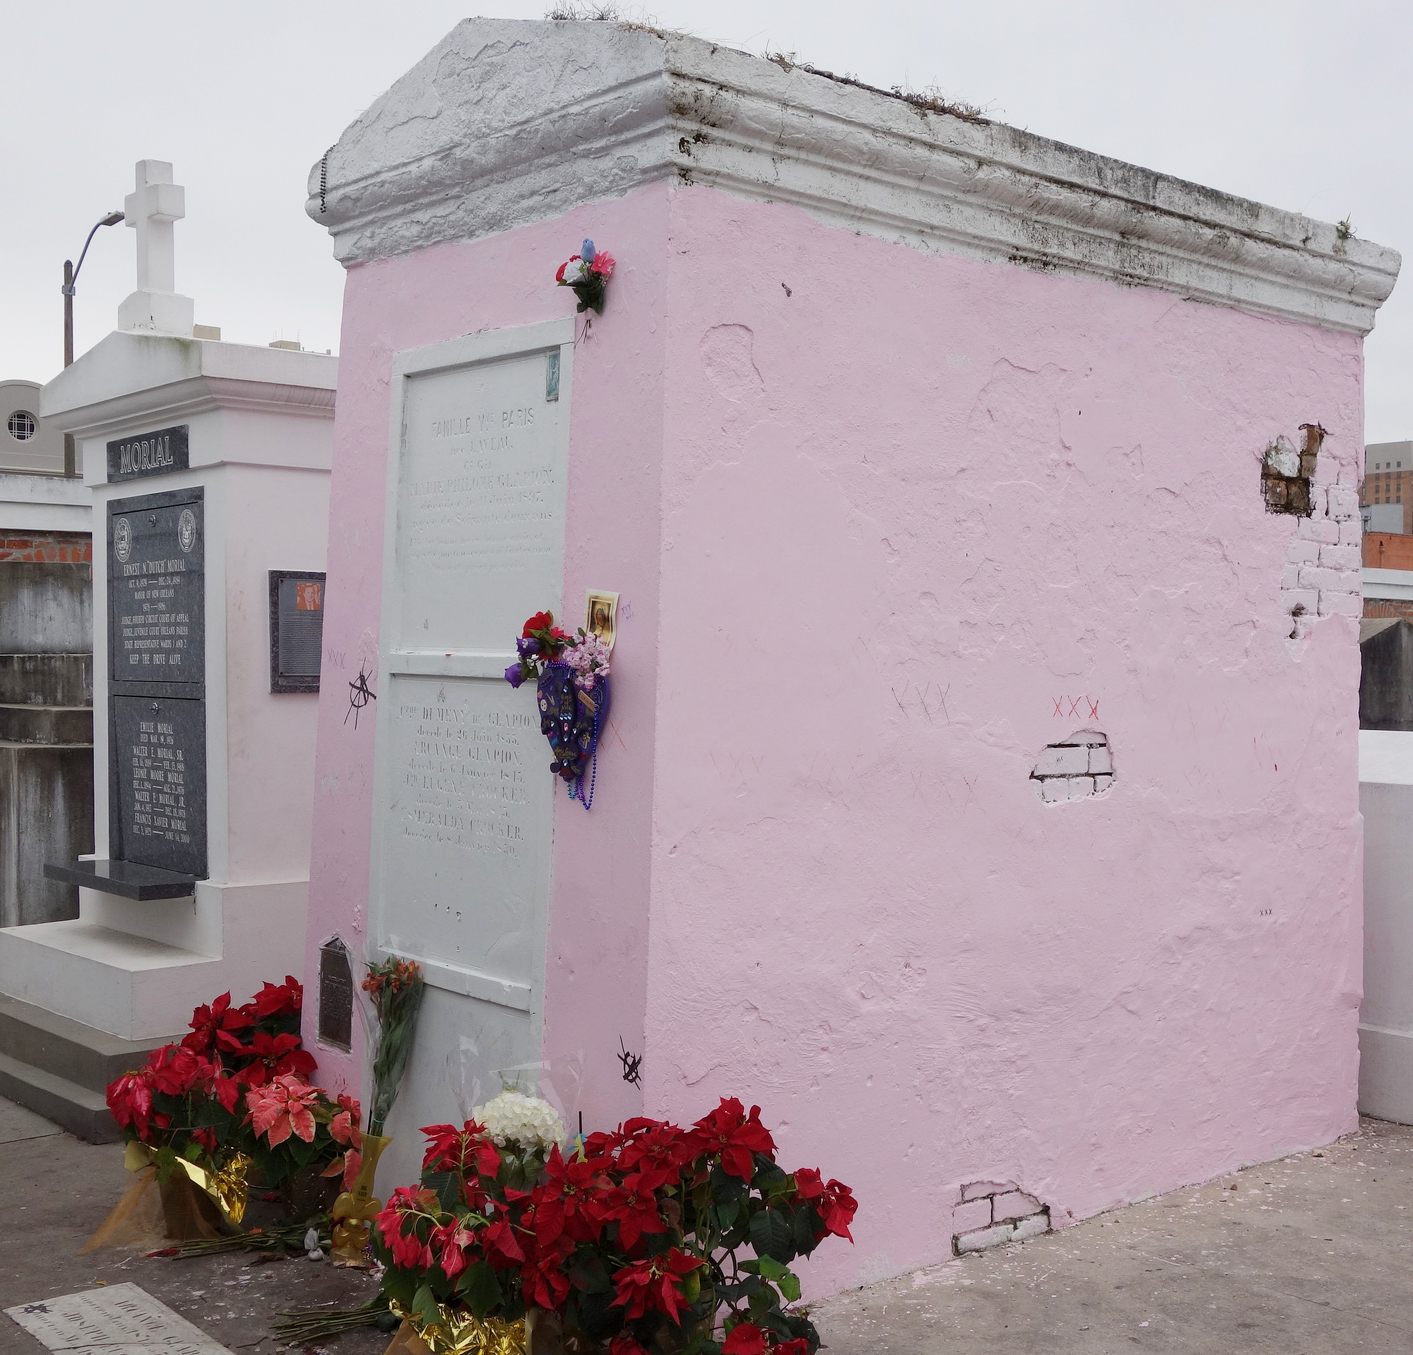 Famille de Vve Paris née Laveau: The Tomb of Marie Laveau ...